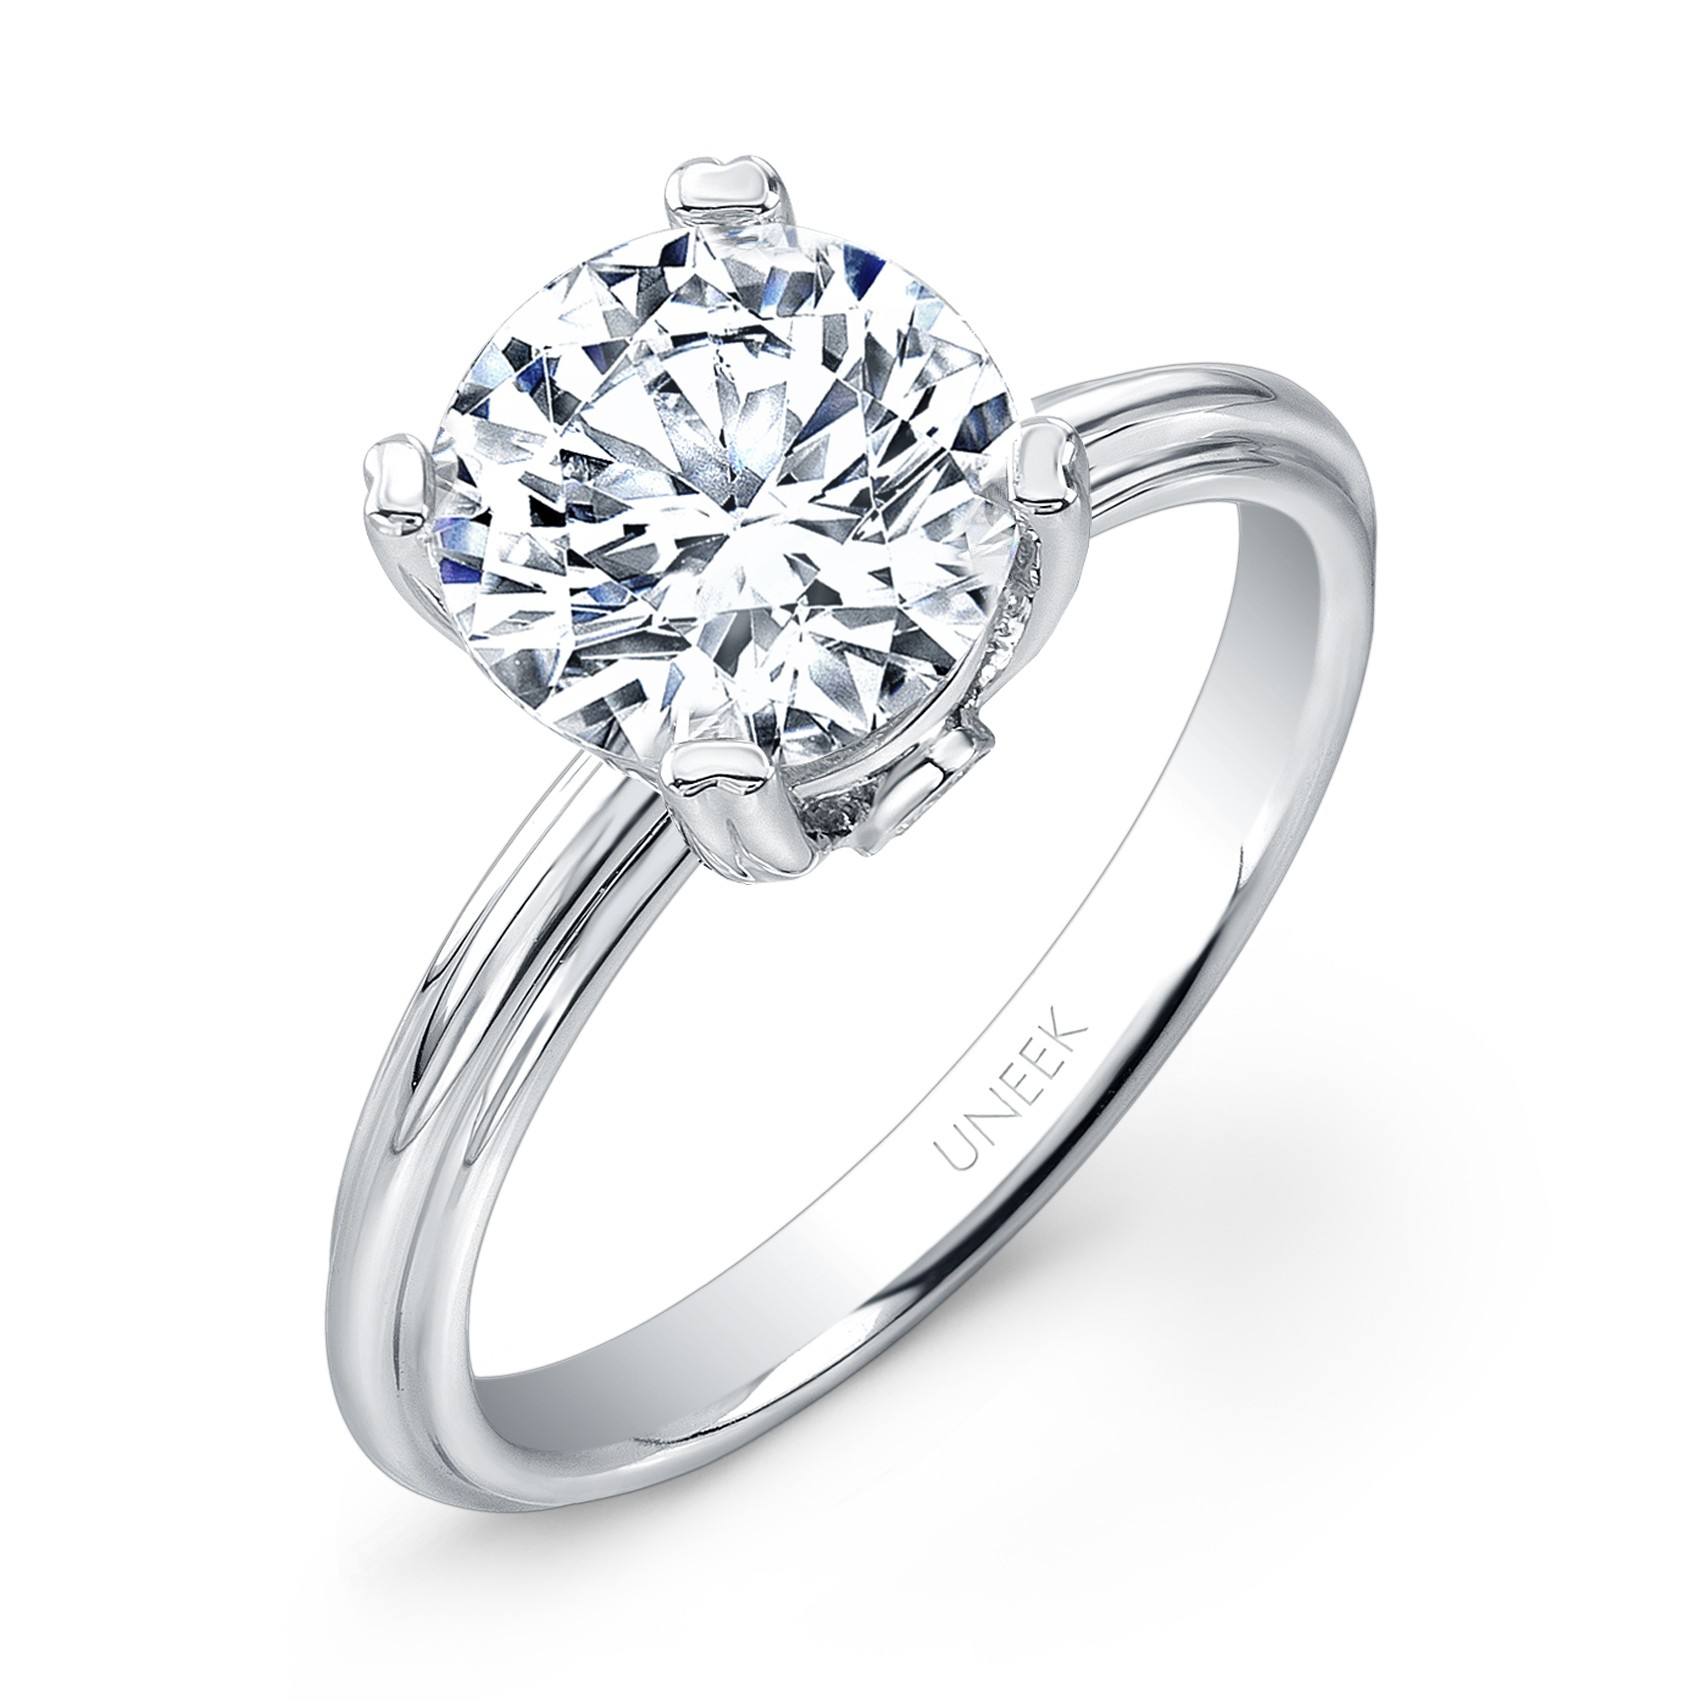 1f5621a7821da Uneek Classic 2-Carat Round Diamond Solitaire Engagement Ring with ...